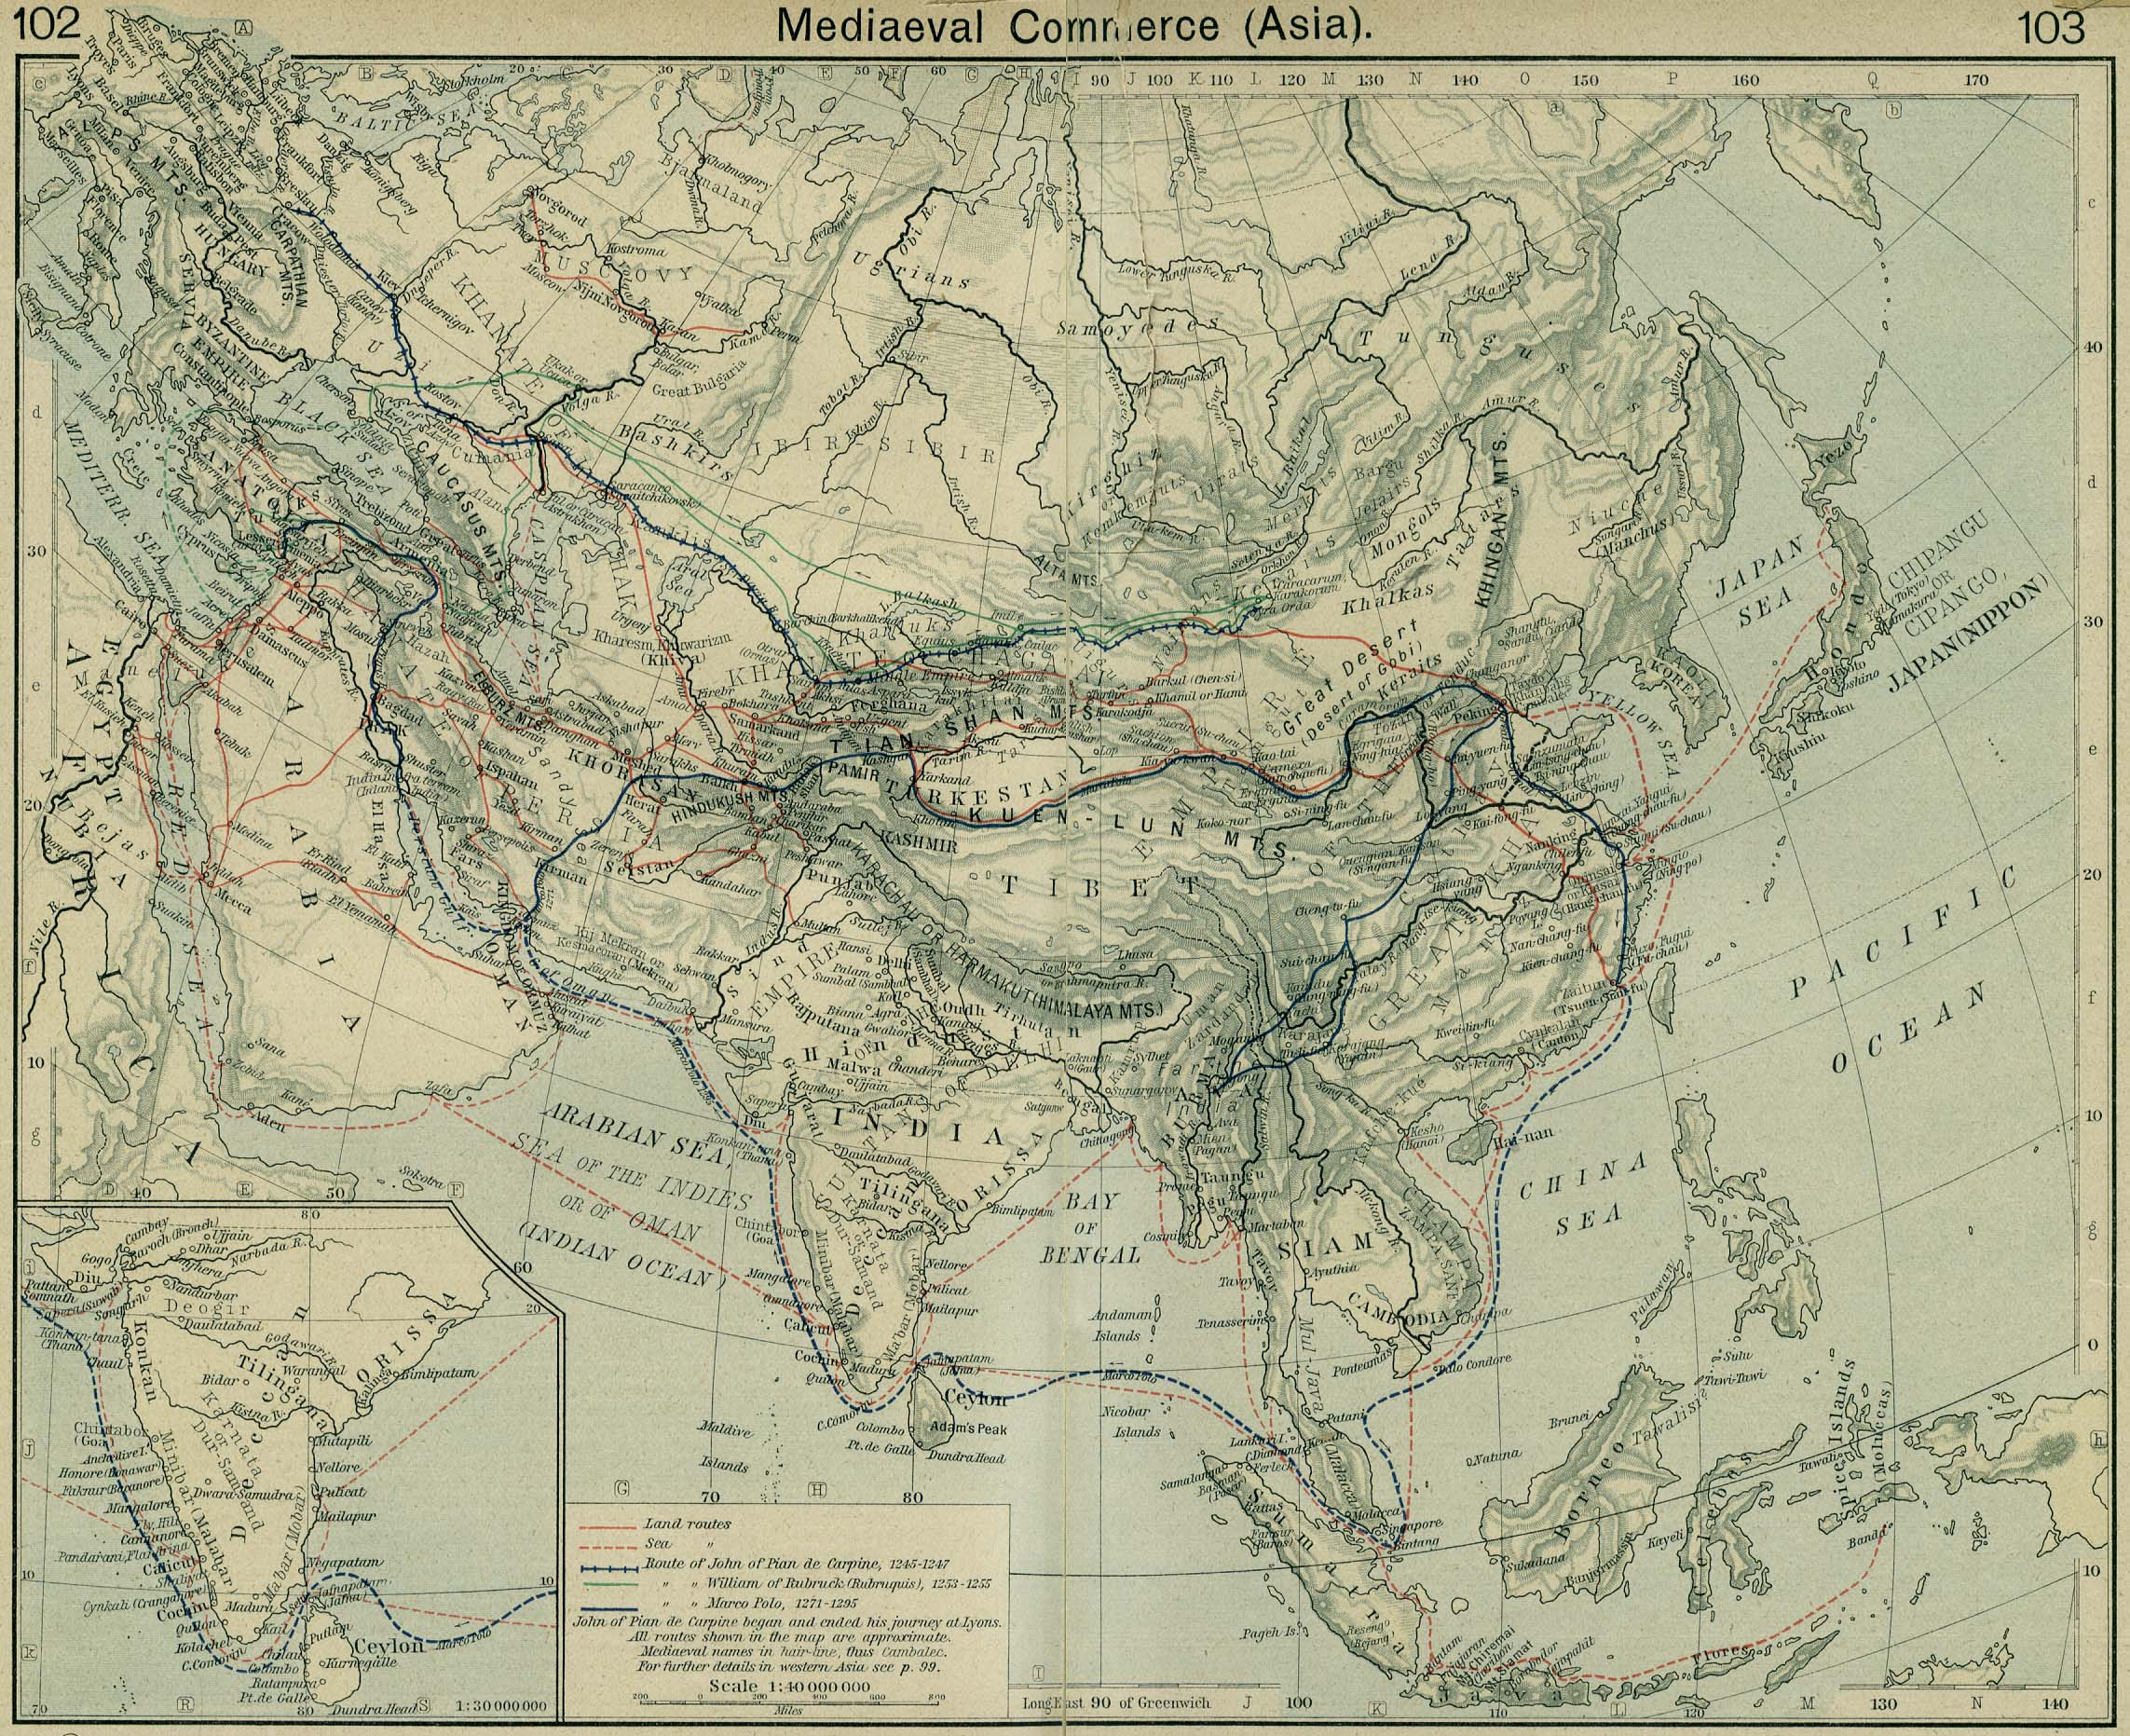 http://www.lib.utexas.edu/maps/historical/shepherd/asia_mediaeval_commerce.jpg